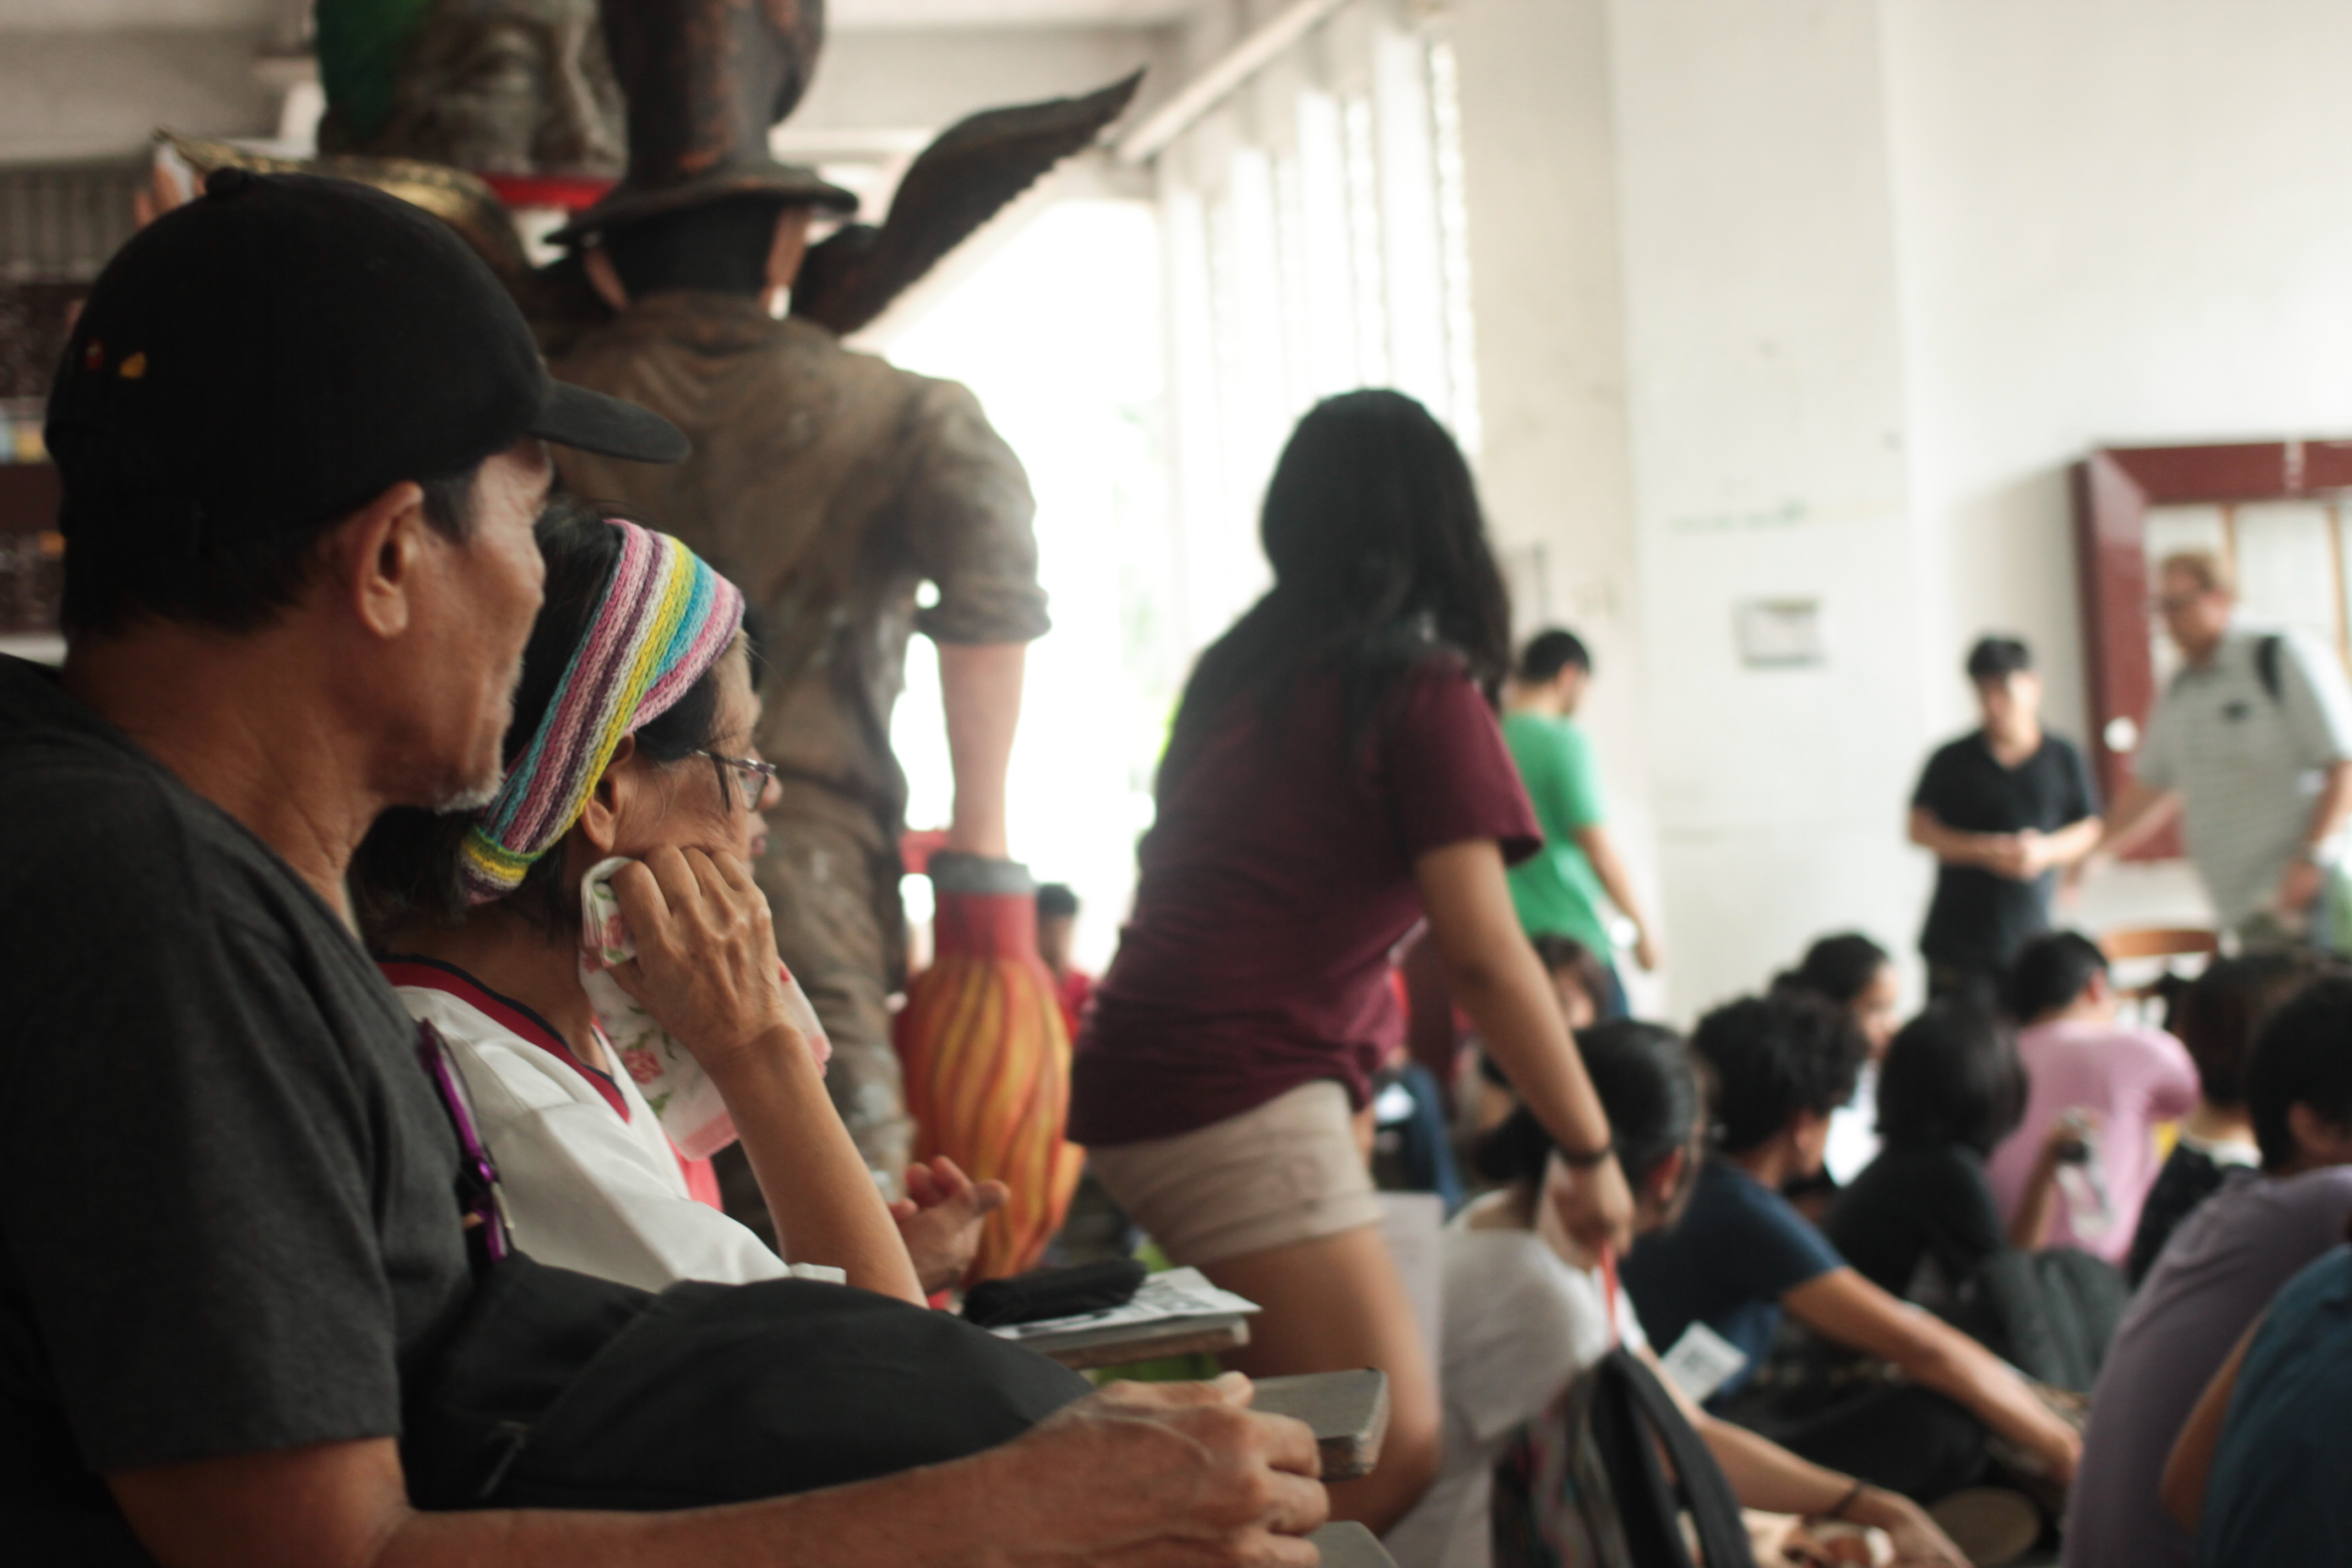 Asher and Linda Cadapan (foreground) look on during the program at Palma Hall lobby (Photo by G.Estella/Bulatlat)